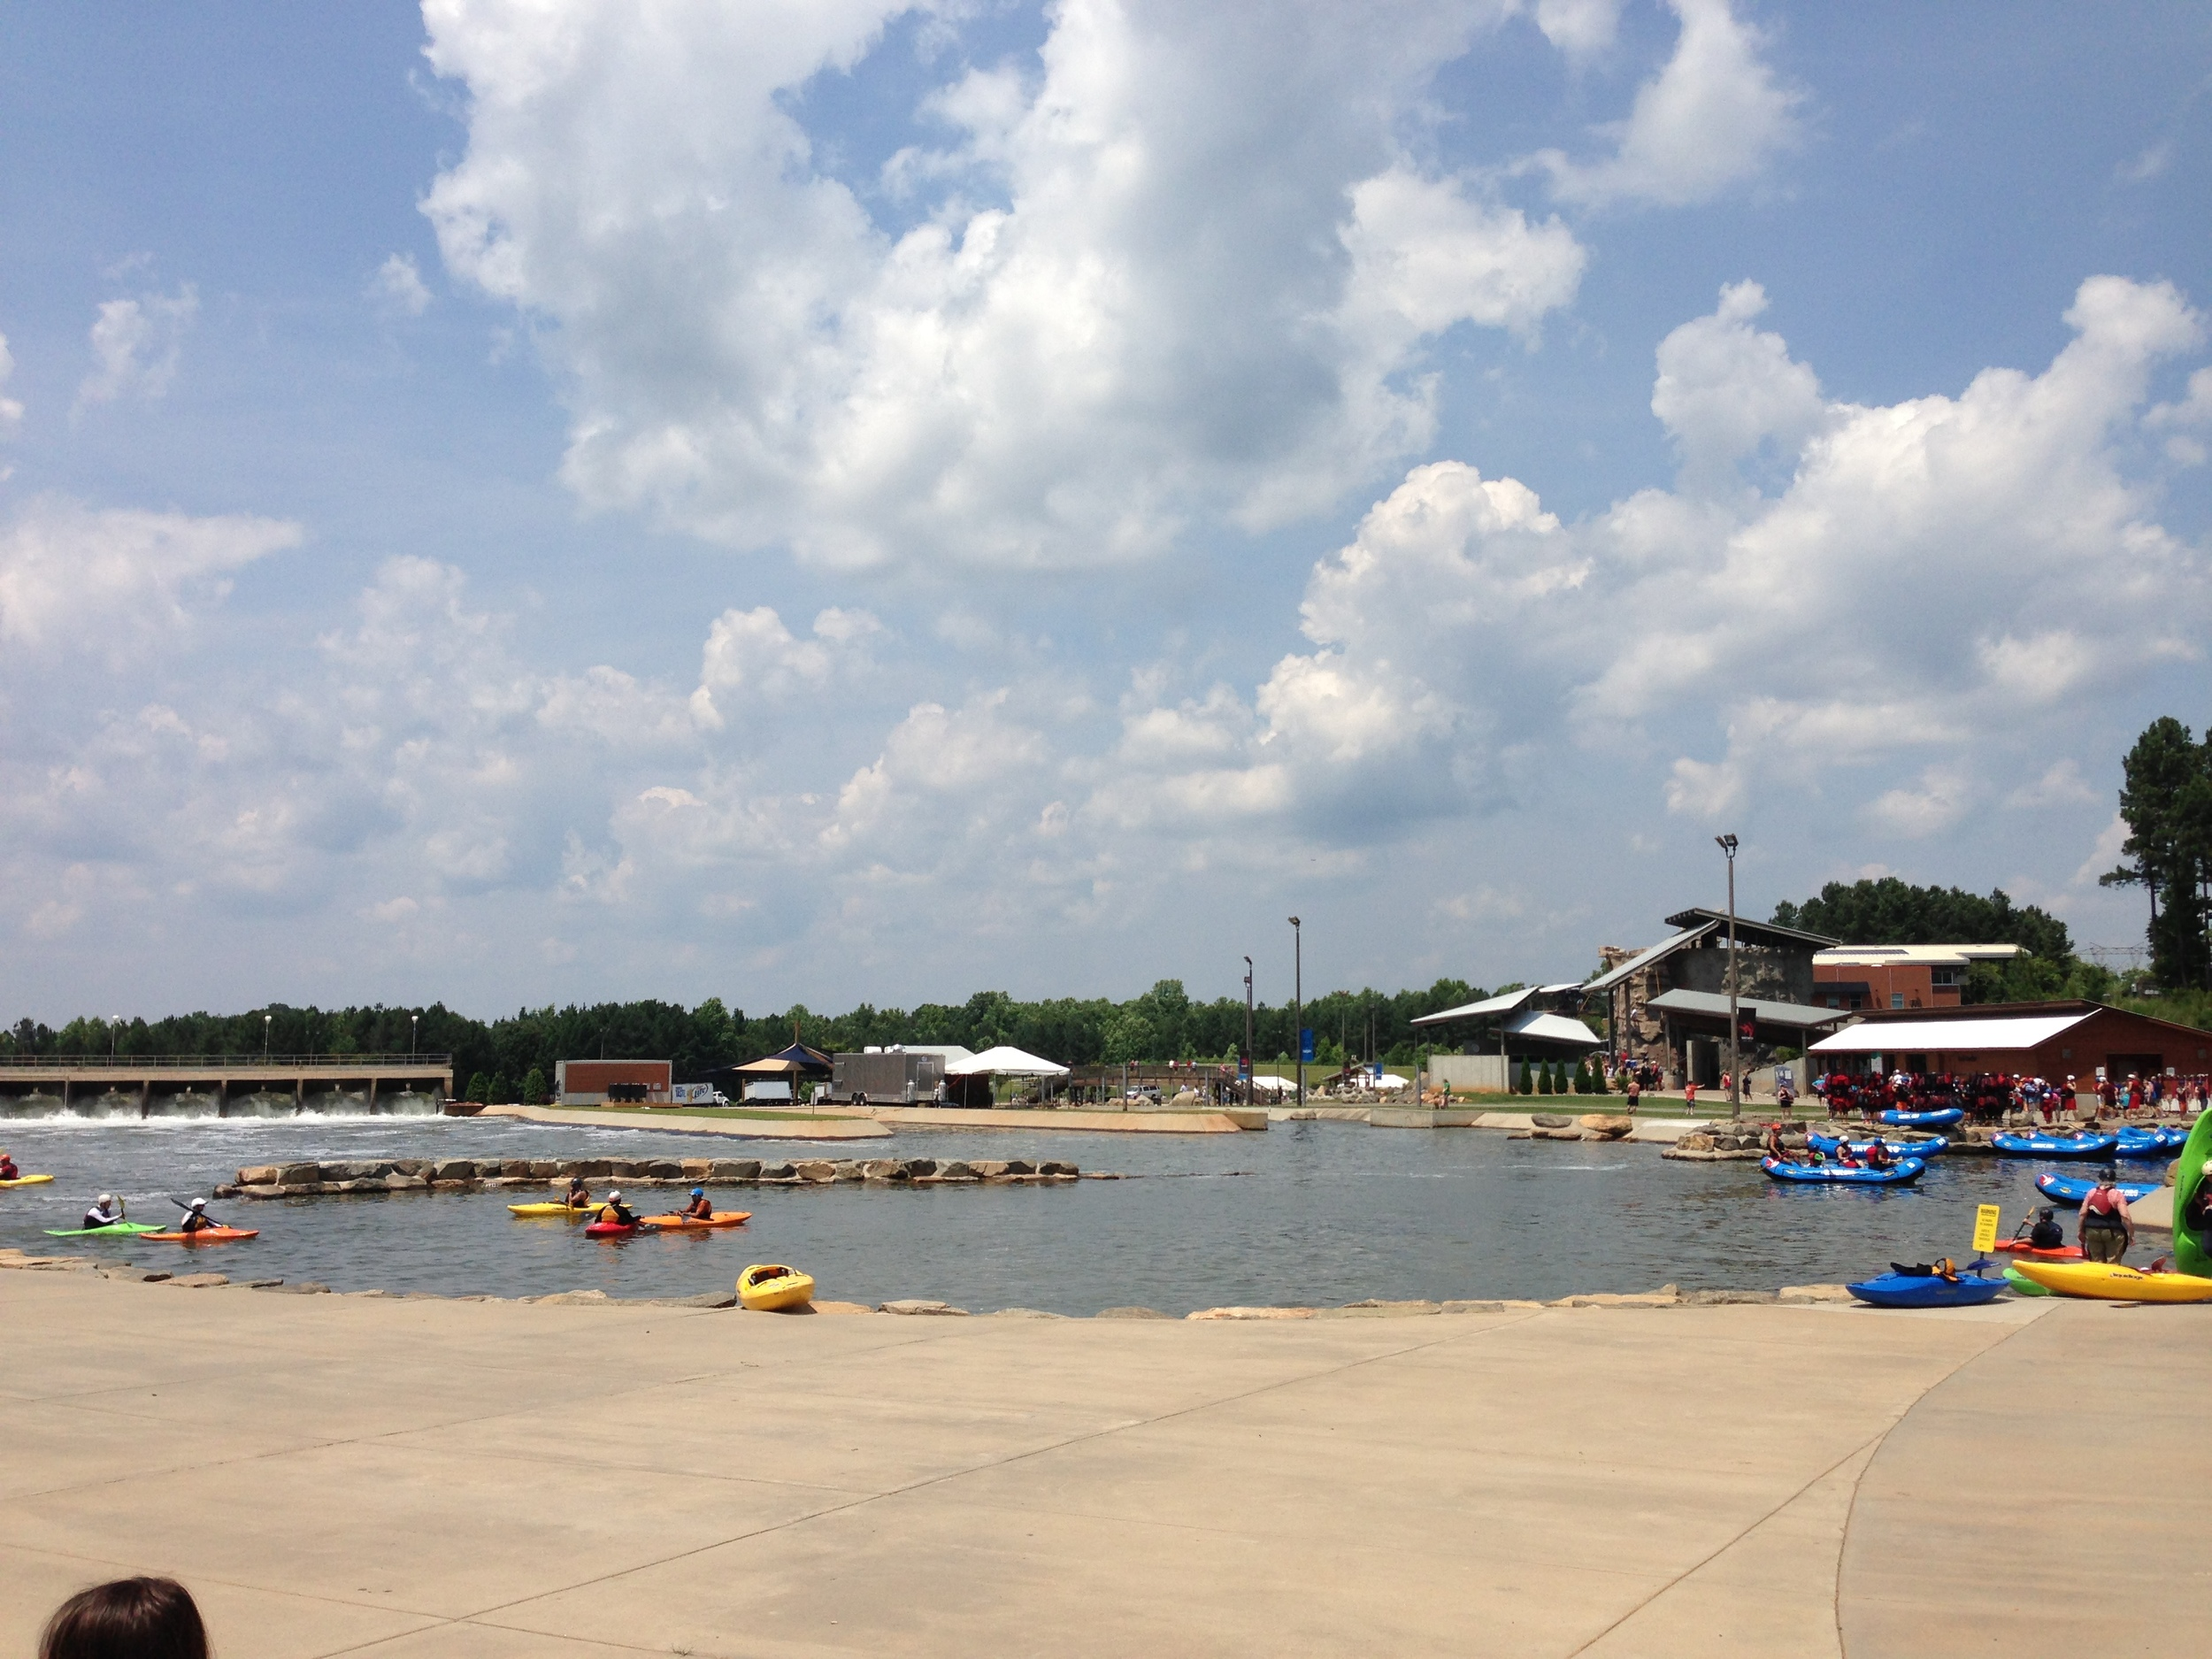 The whitewater area at the WWC